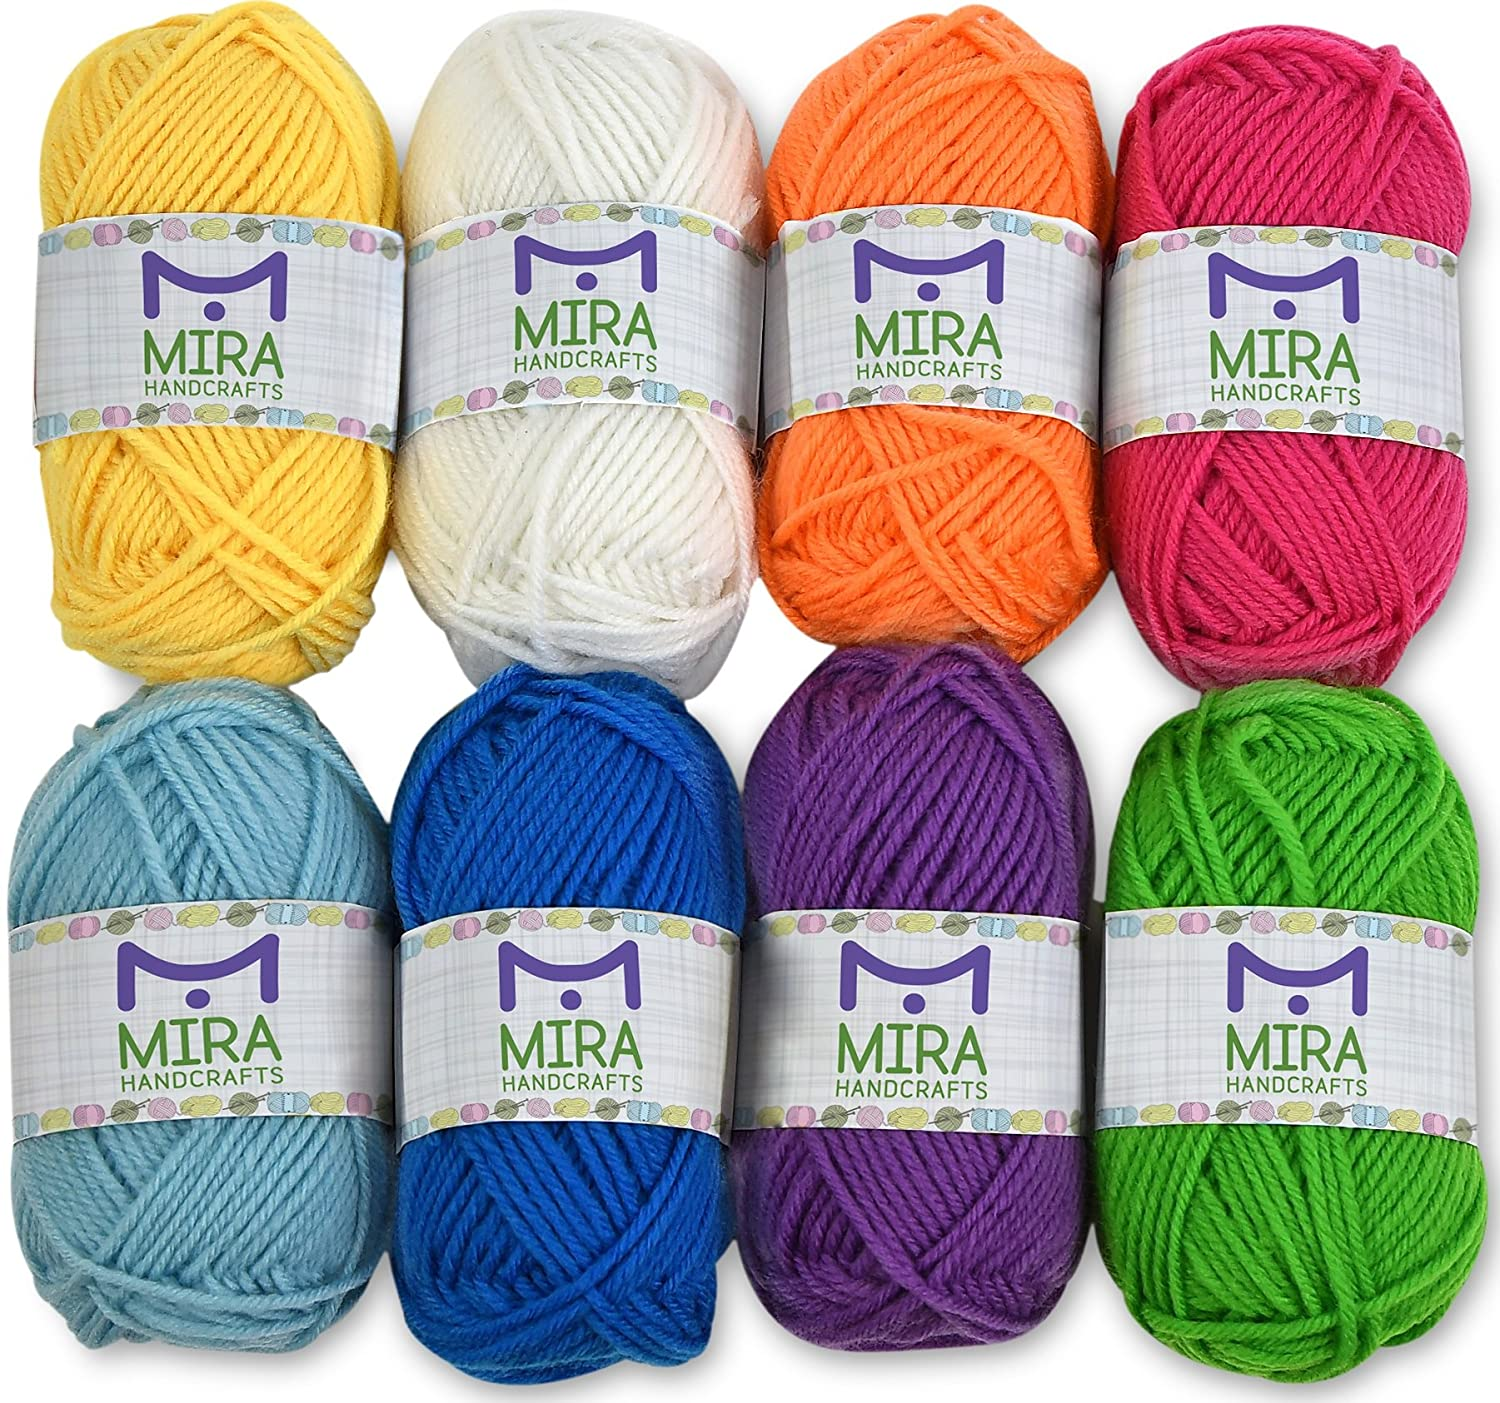 Mira Handcrafts 8 Acrylic Yarn Bonbons | Total of 525 yards Craft Yarn | Includes 2 Crochet Hooks, 2 Weaving Needles, 7 E-books | DK Yarn for Knitting and Crochet | Perfect Beginner Kit MiraGoods 4336926377